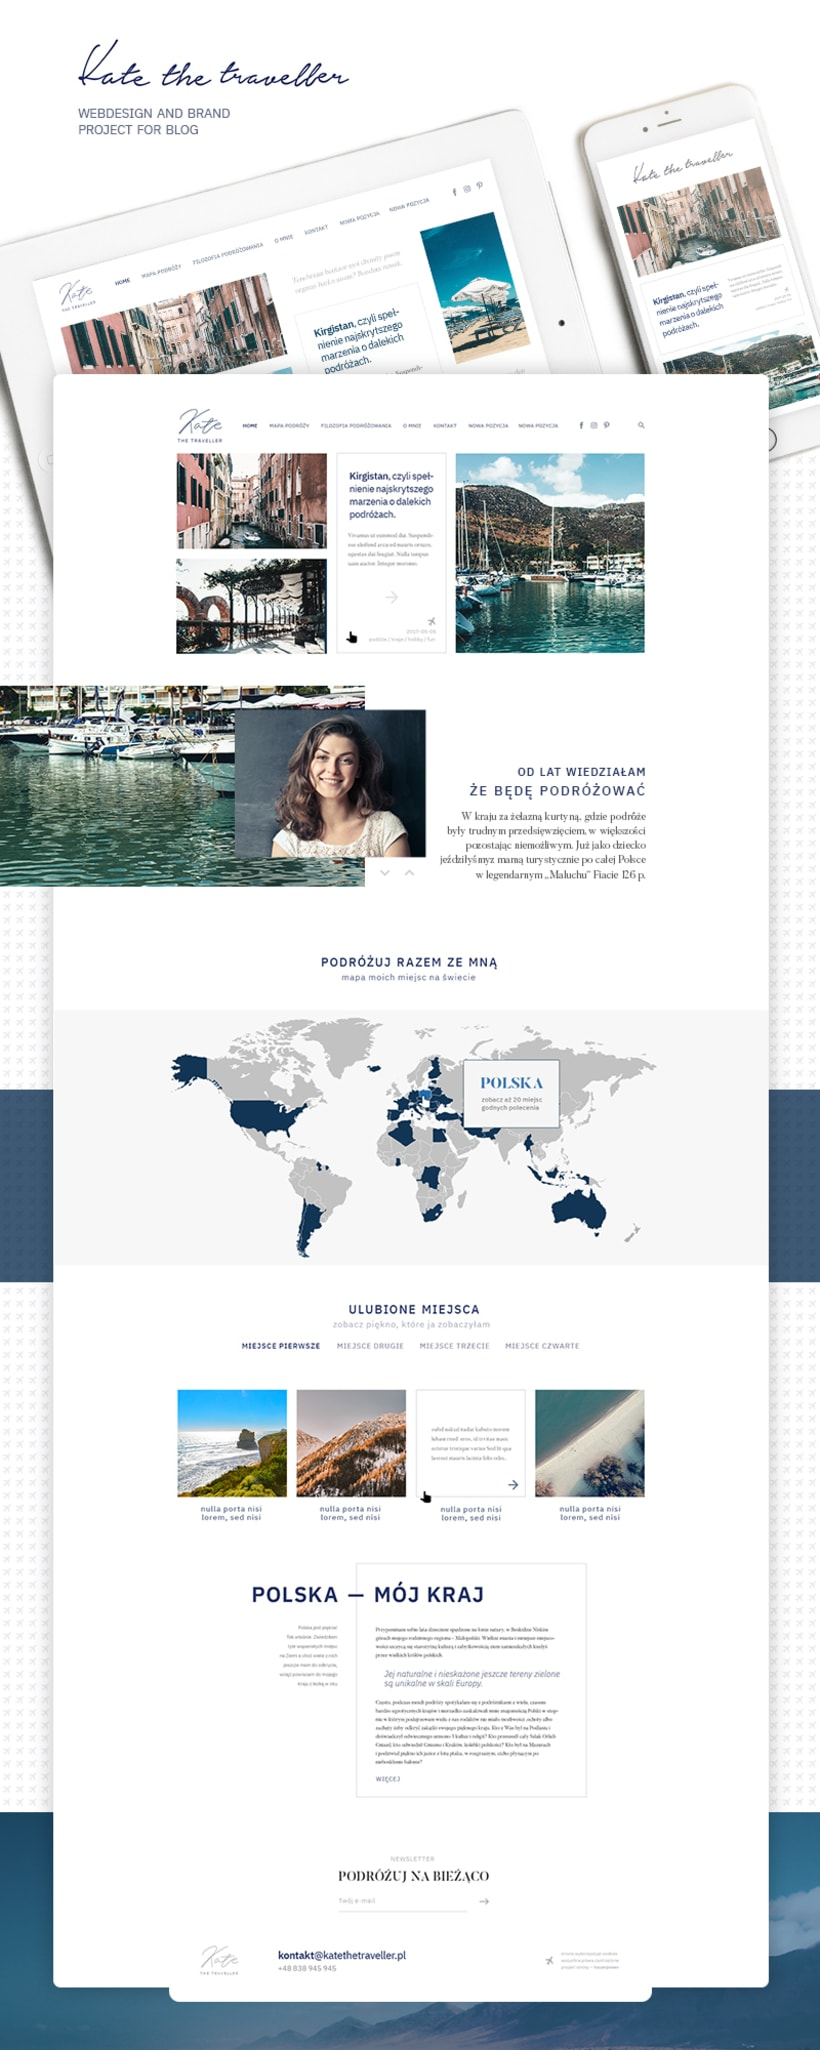 Kate the Traveller — Webdesign and brand project  1